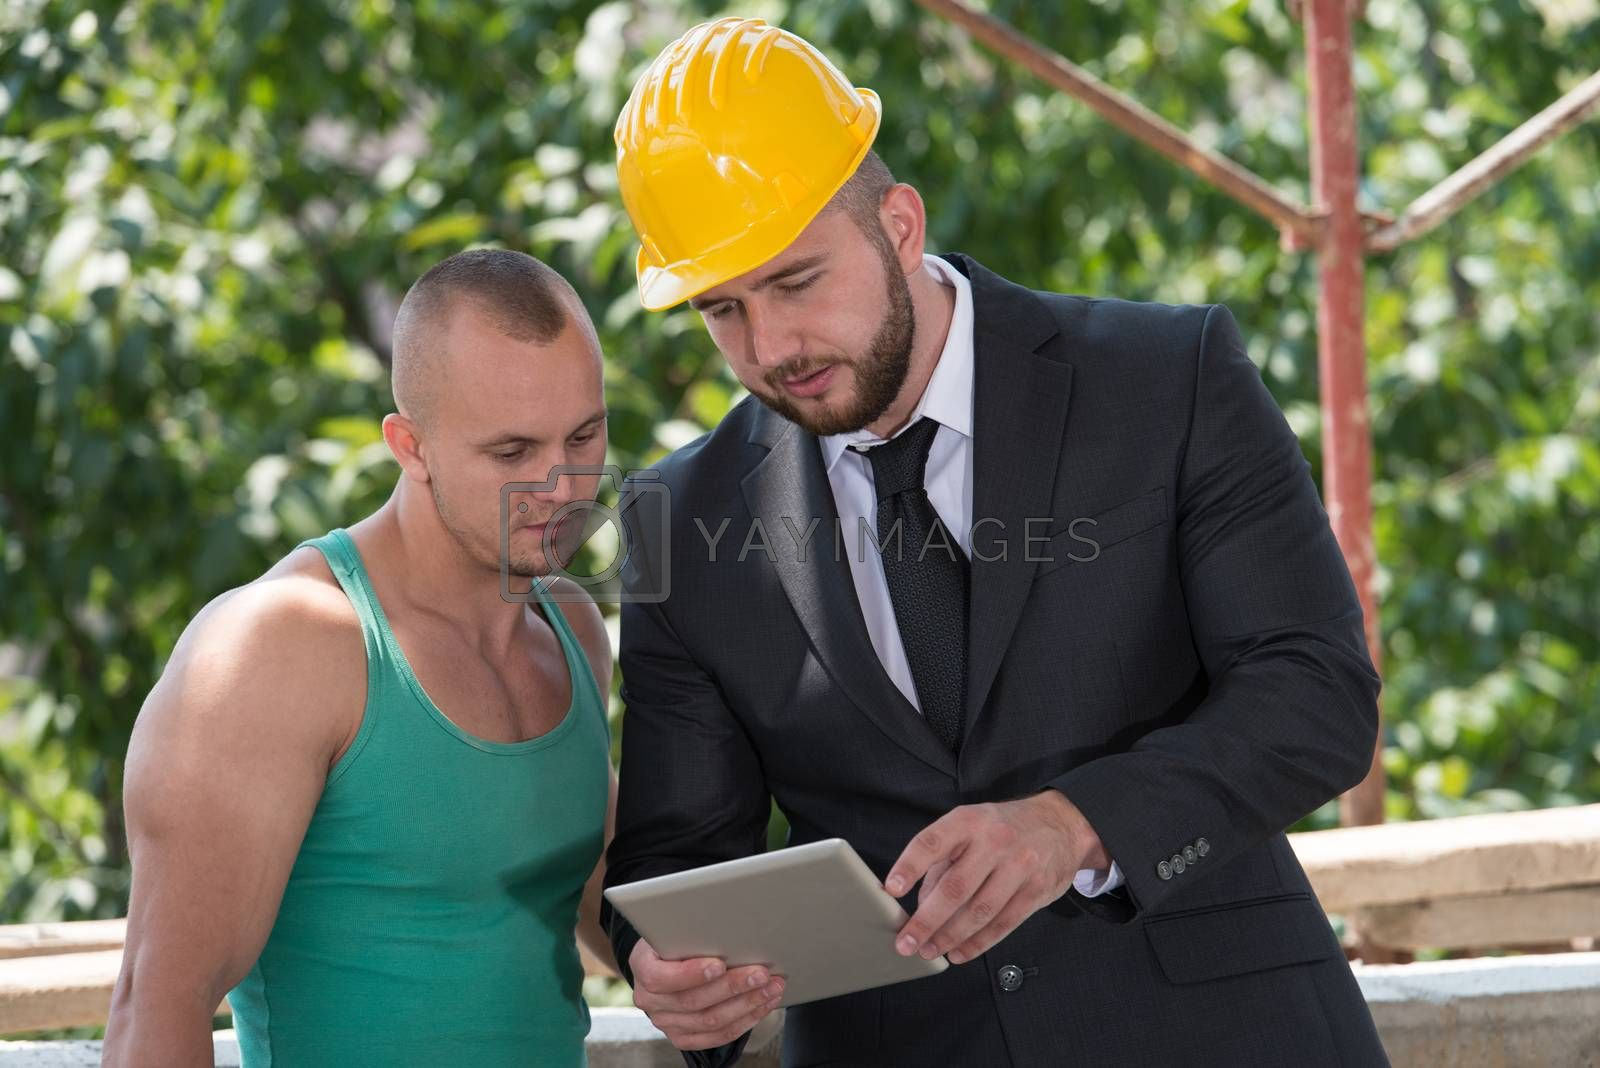 Royalty free image of Businessman And Industrial Worker Looking At Tablet PC by JalePhoto